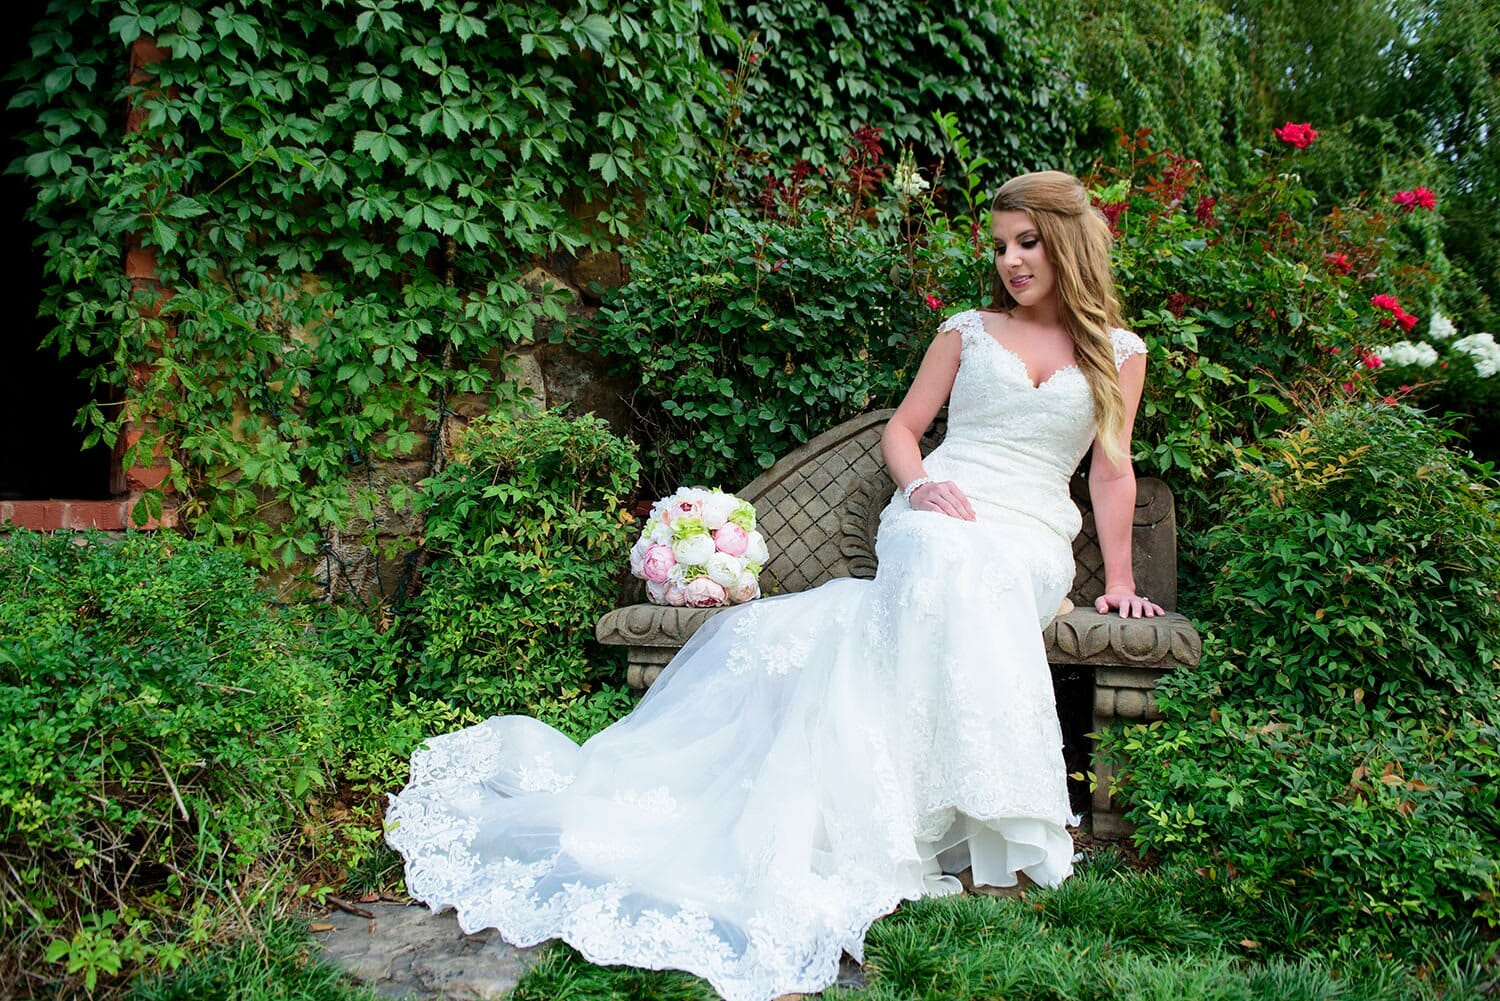 Morgan-H-Bridal-313.jpg